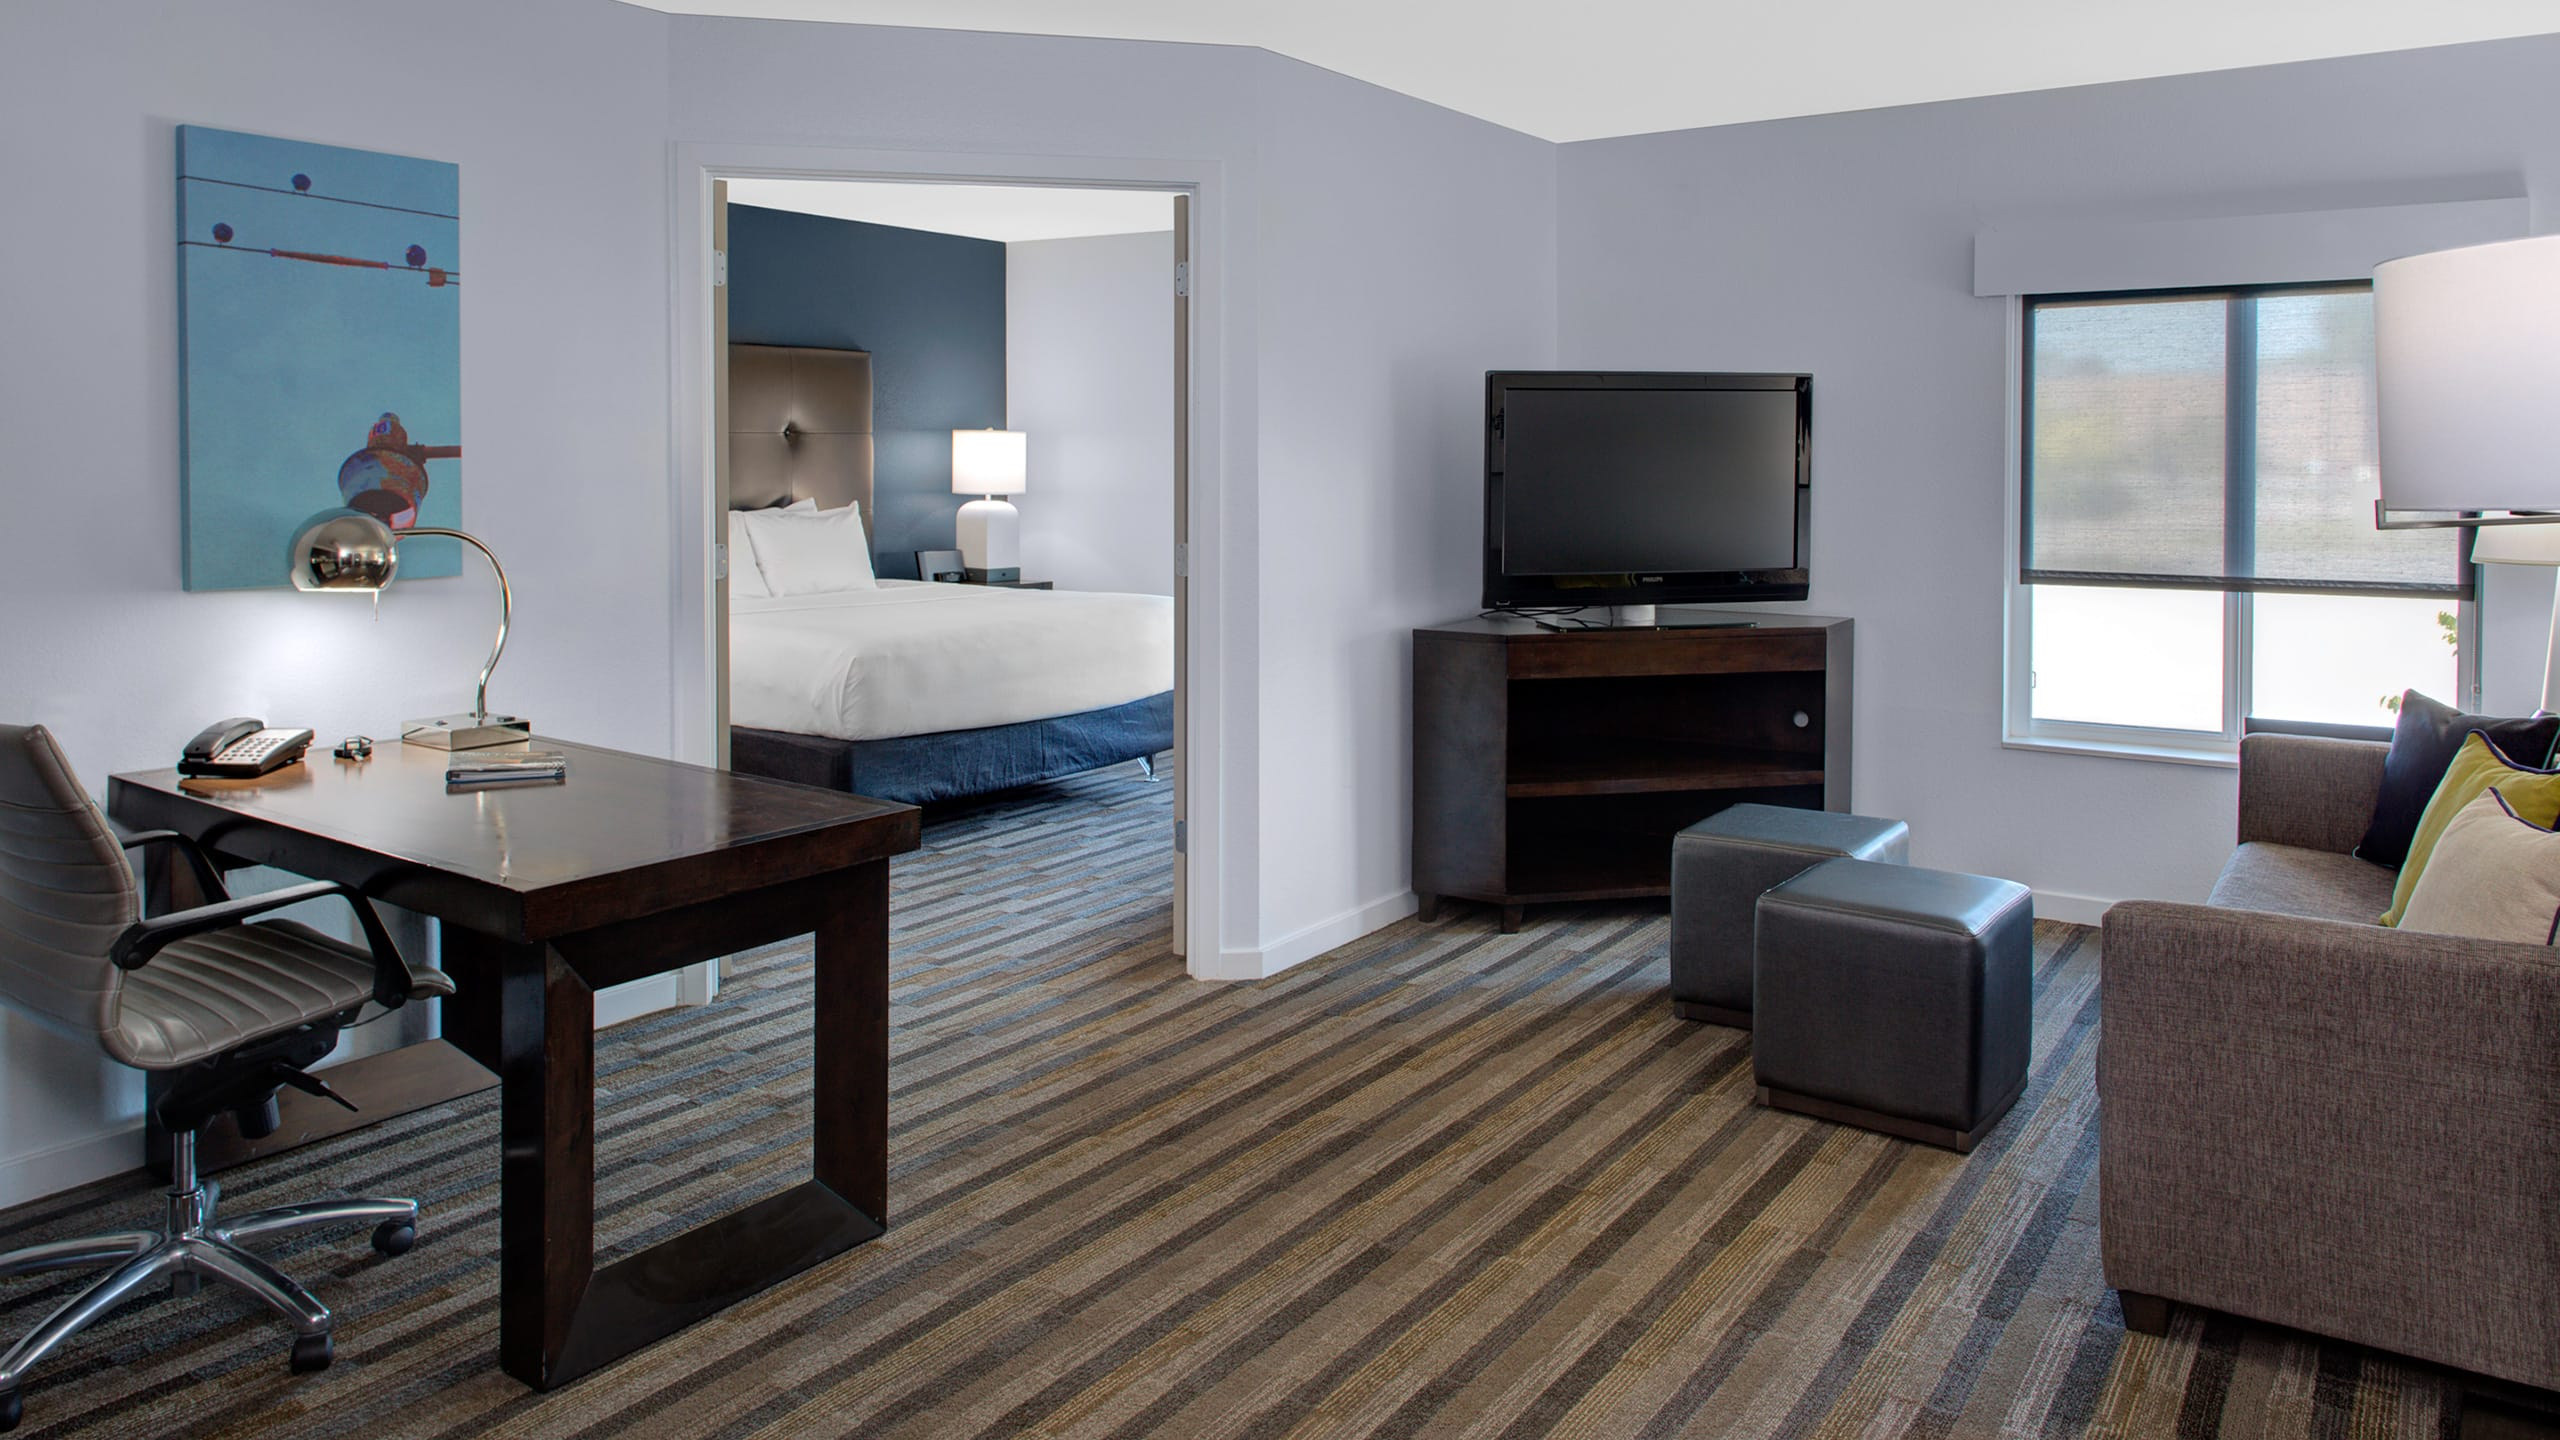 Extended Stay Hotel near Raleigh Durham Airport